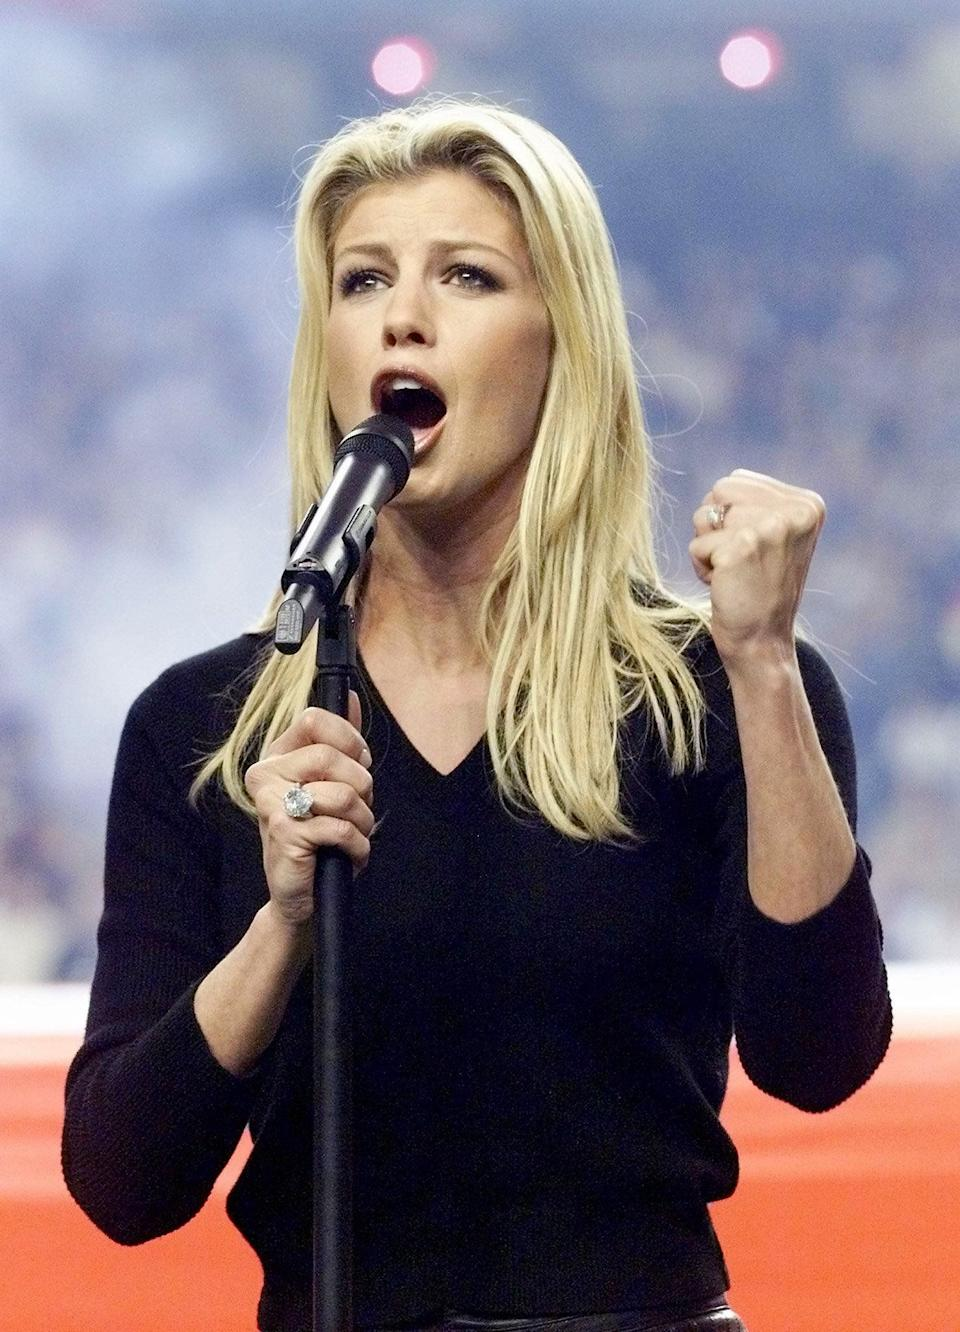 US singer Faith Hill sings the US National Anthem before the start of Super Bowl XXXIV at the Georgia Dome in Atlanta Jan. 3, 2000. The St. Louis Rams and Tennessee Titans competedfor the NFL 1999 championship.